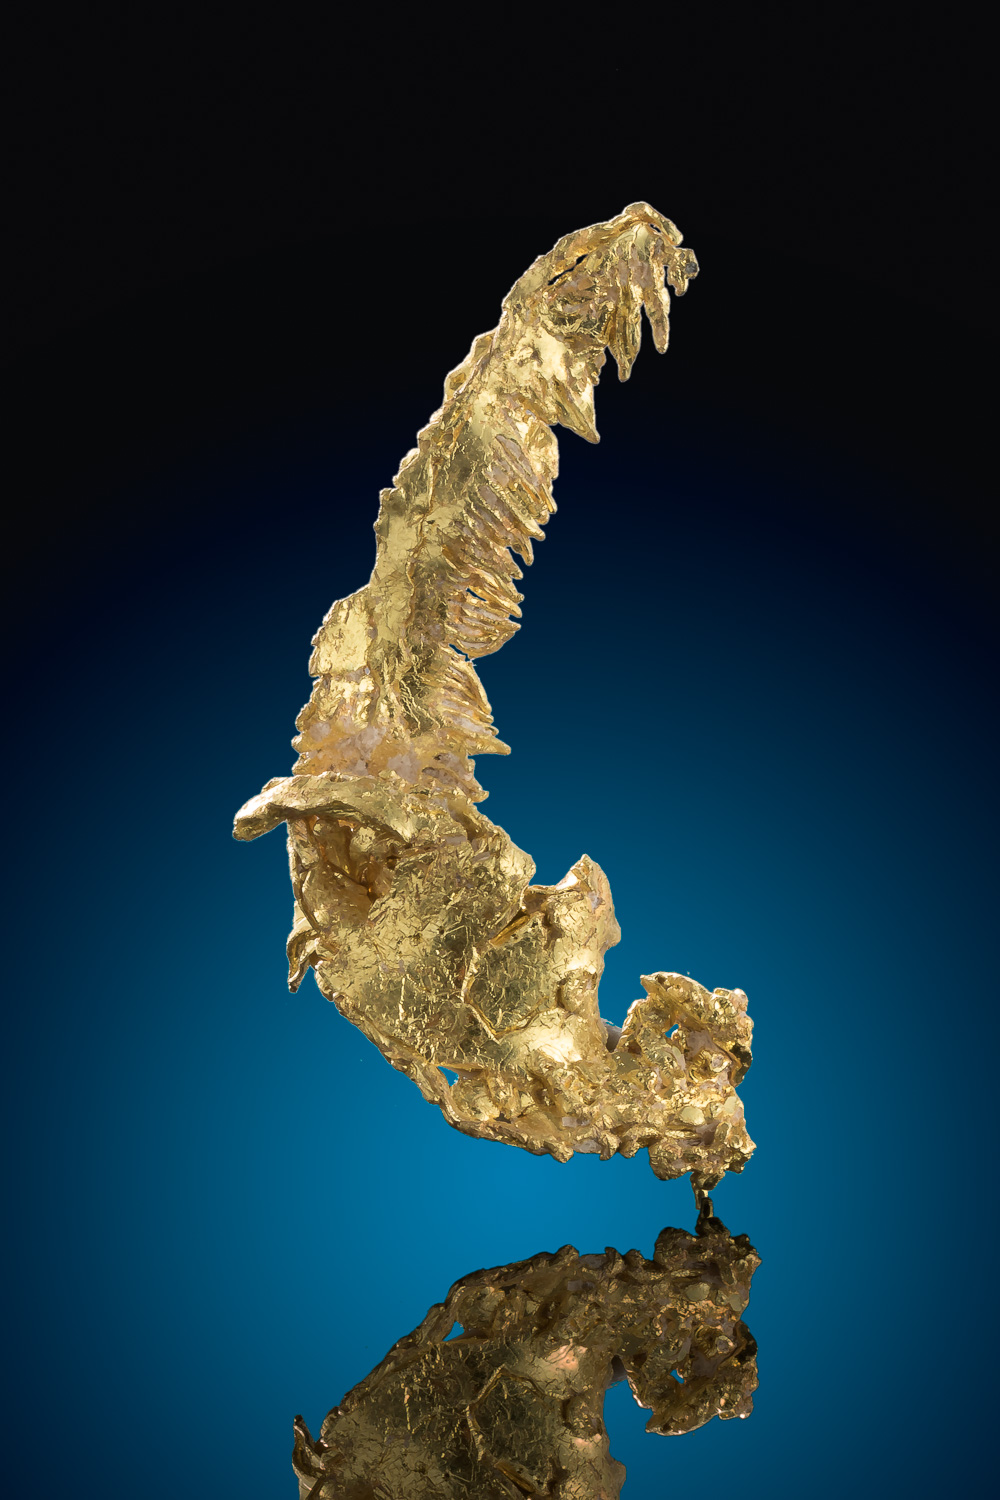 """The Feather"" Gold Nugget Specimen from Eagles Nest Gold Mine"